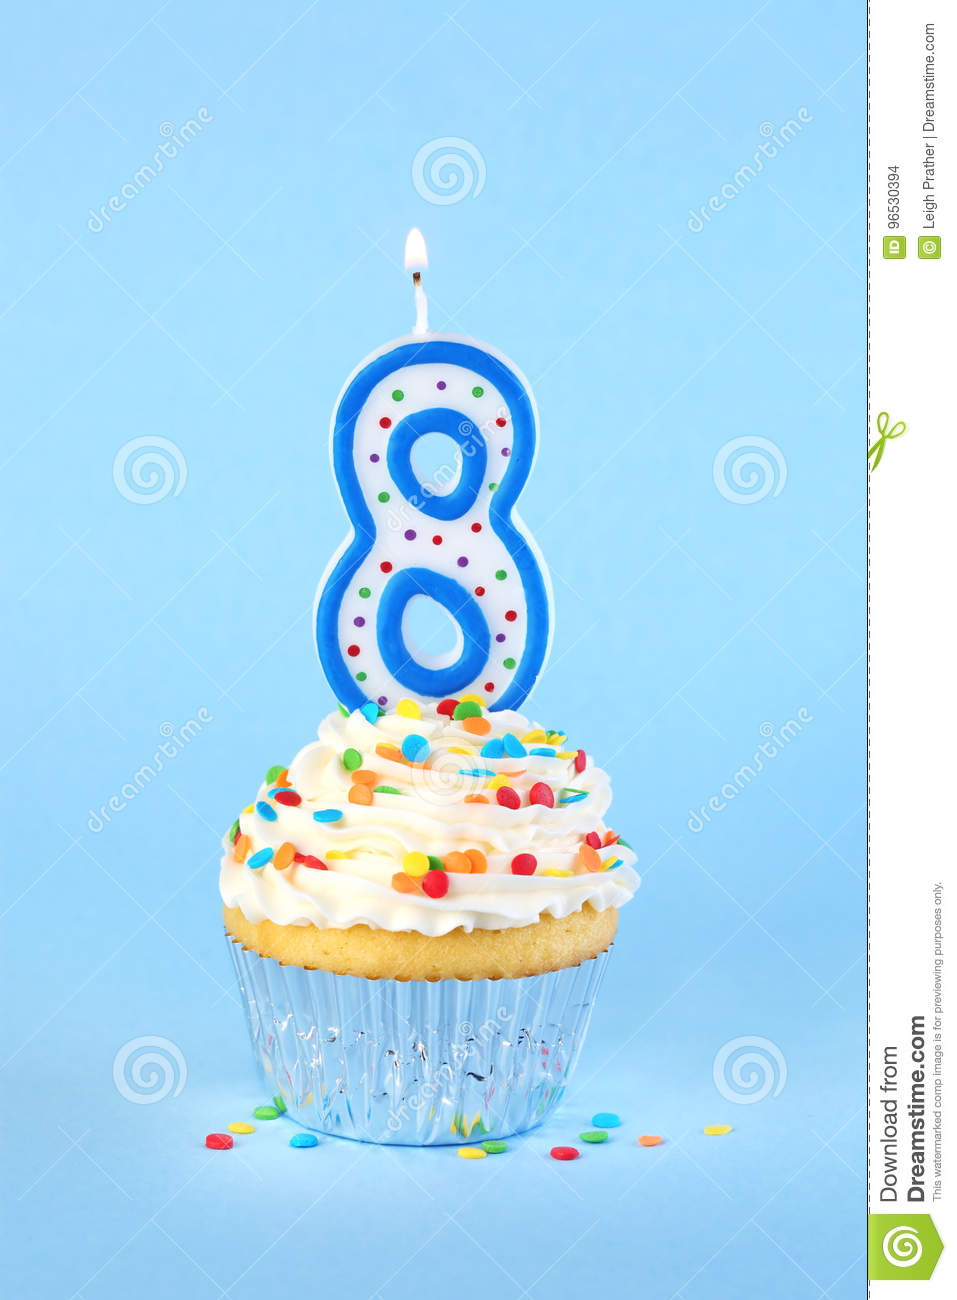 Iced Birthday Cupcake With Lit Number 8 Candle